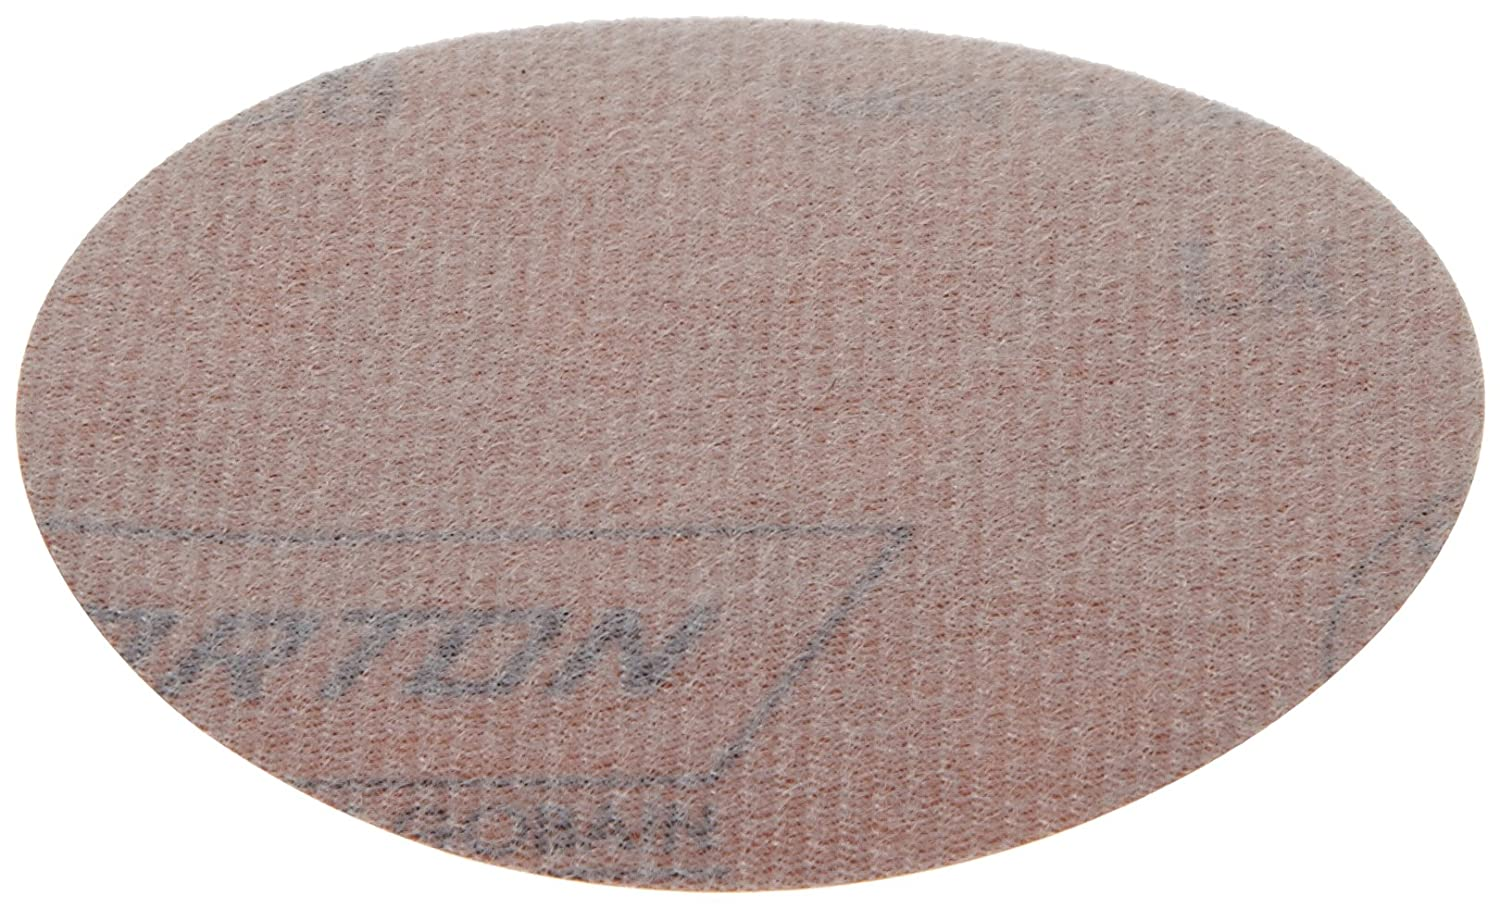 3 Hook and Loop Sanding Discs Choose from 80-1500 Grit Pack of 50 Norton A275 Sandpaper